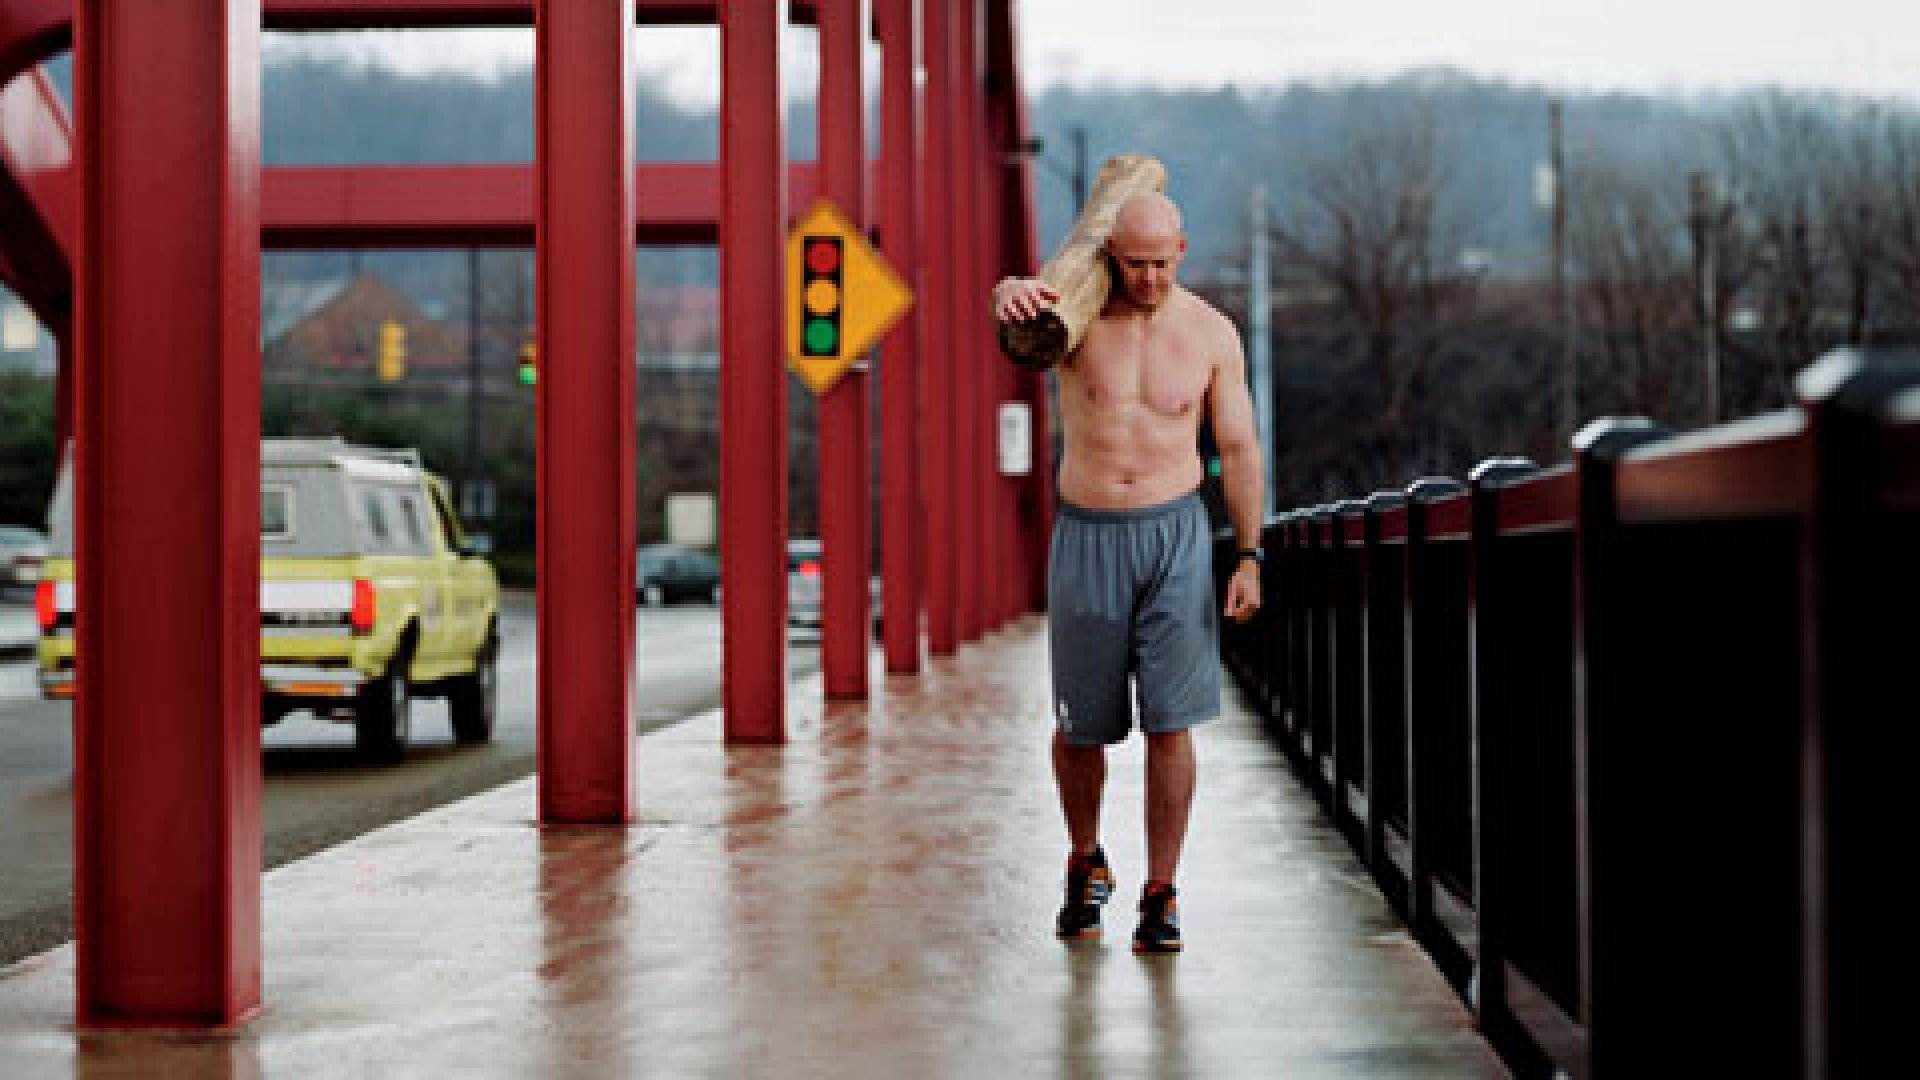 <strong>Tough Town</strong> Paul Dunleavy, an iconic figure in Youngstown, runs and walks through the streets carrying a 55-pound log in the spring of 2010. As he does it, he prays for his city.